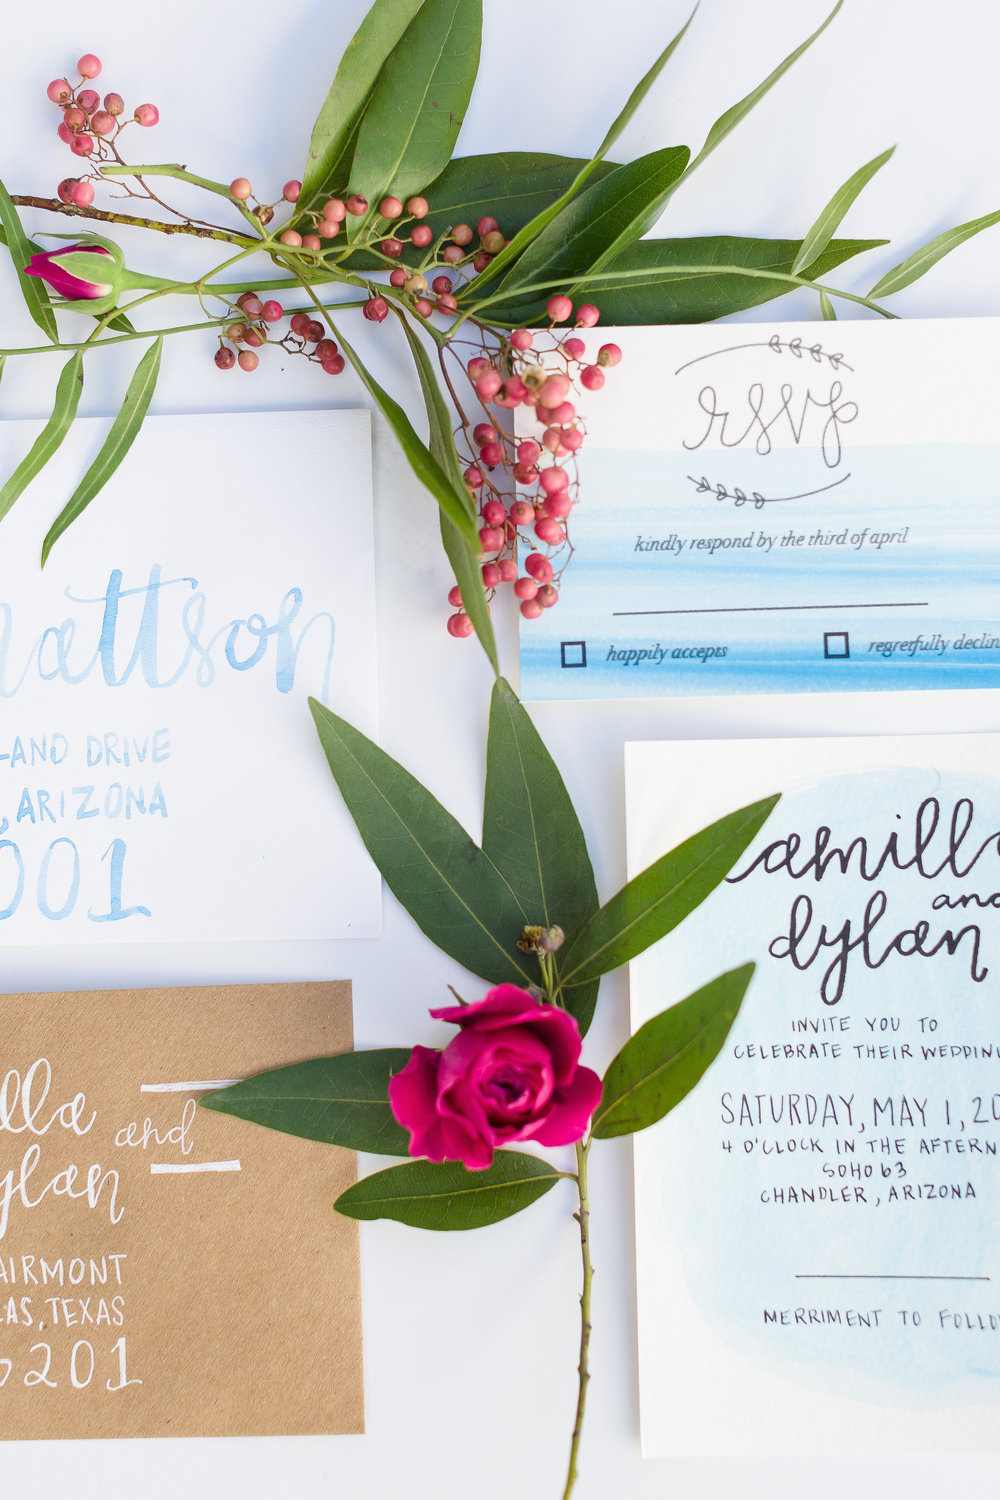 Colorful Santorini Inspired Styled Shoot Featured on Inspired by This!- Konsider It Done- AZ Arizona Wedding & Event Planner, Designer, Coordinator Planning in Scottsdale, Phoenix, Paradise Valley, Tempe, Gilbert, Mesa, Chandler, Tucson, Sedona